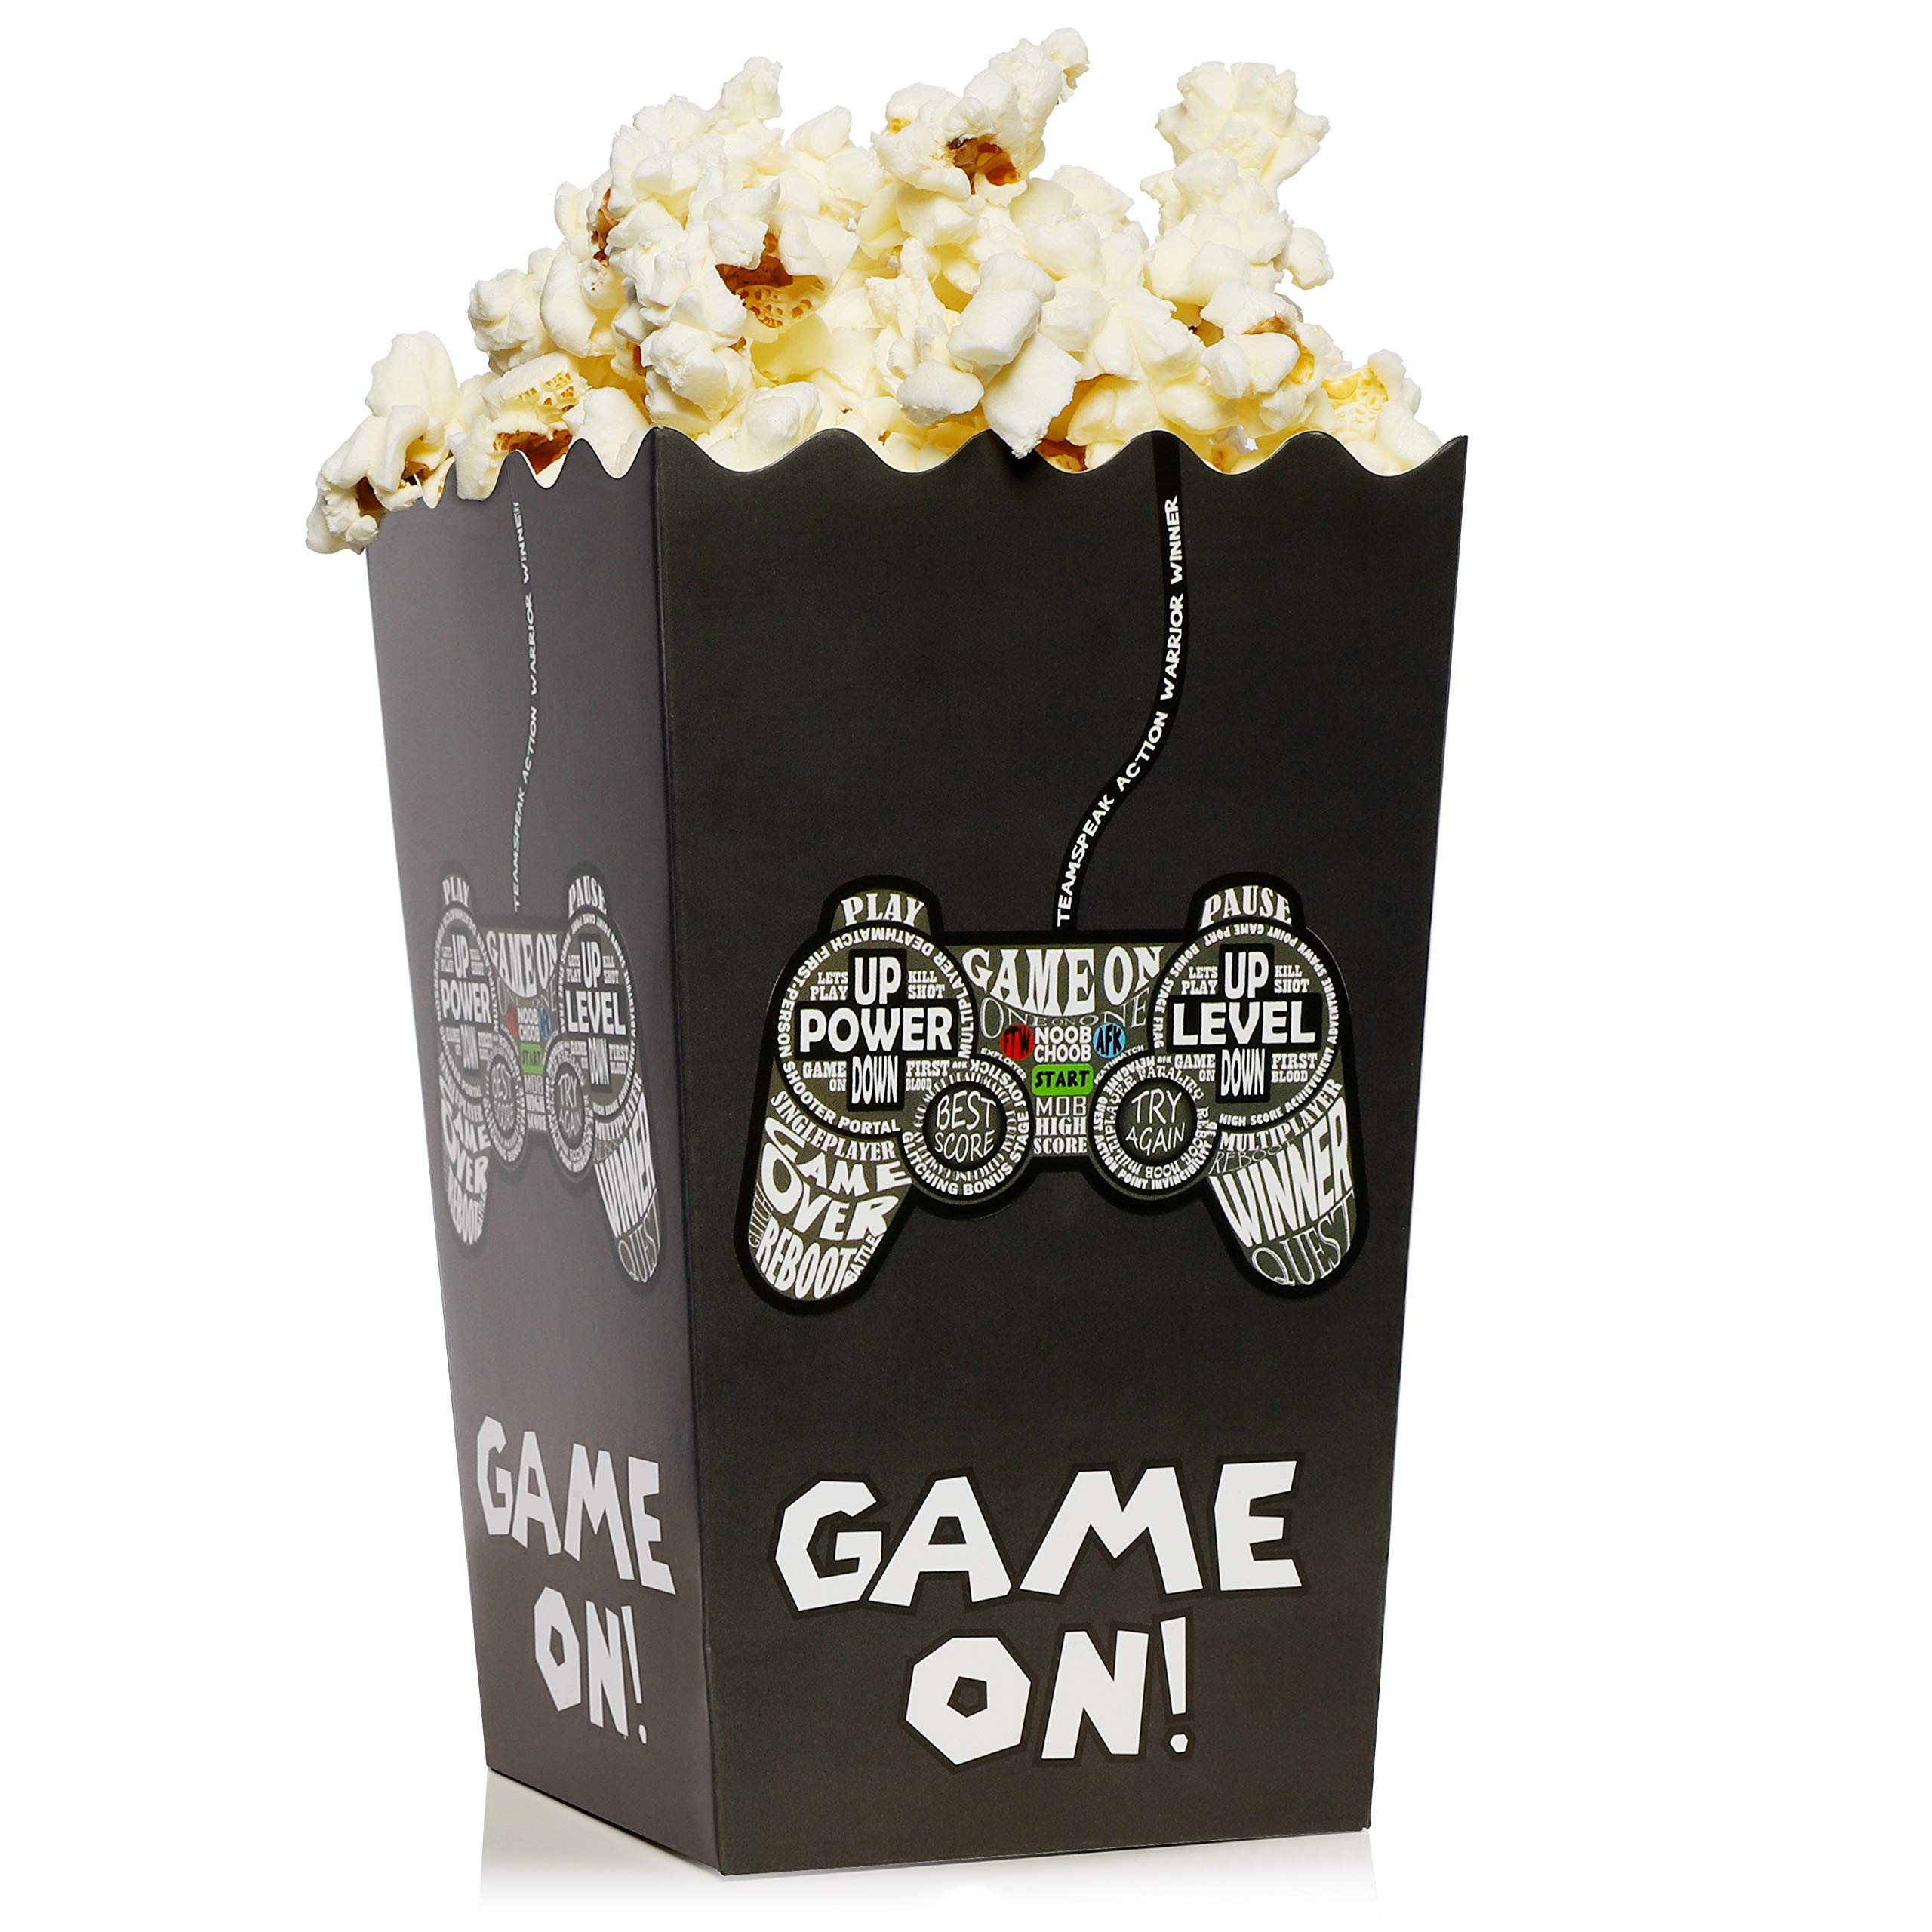 100-Pack Video Game Popcorn Boxes - 46oz Open Top Popcorn Favor Containers, Video Game Party Supplies, Movie Night, Birthday, Baby Shower, Gaming Parties, Game On Print, 3.75 x 3.75 x 7.8 Inches